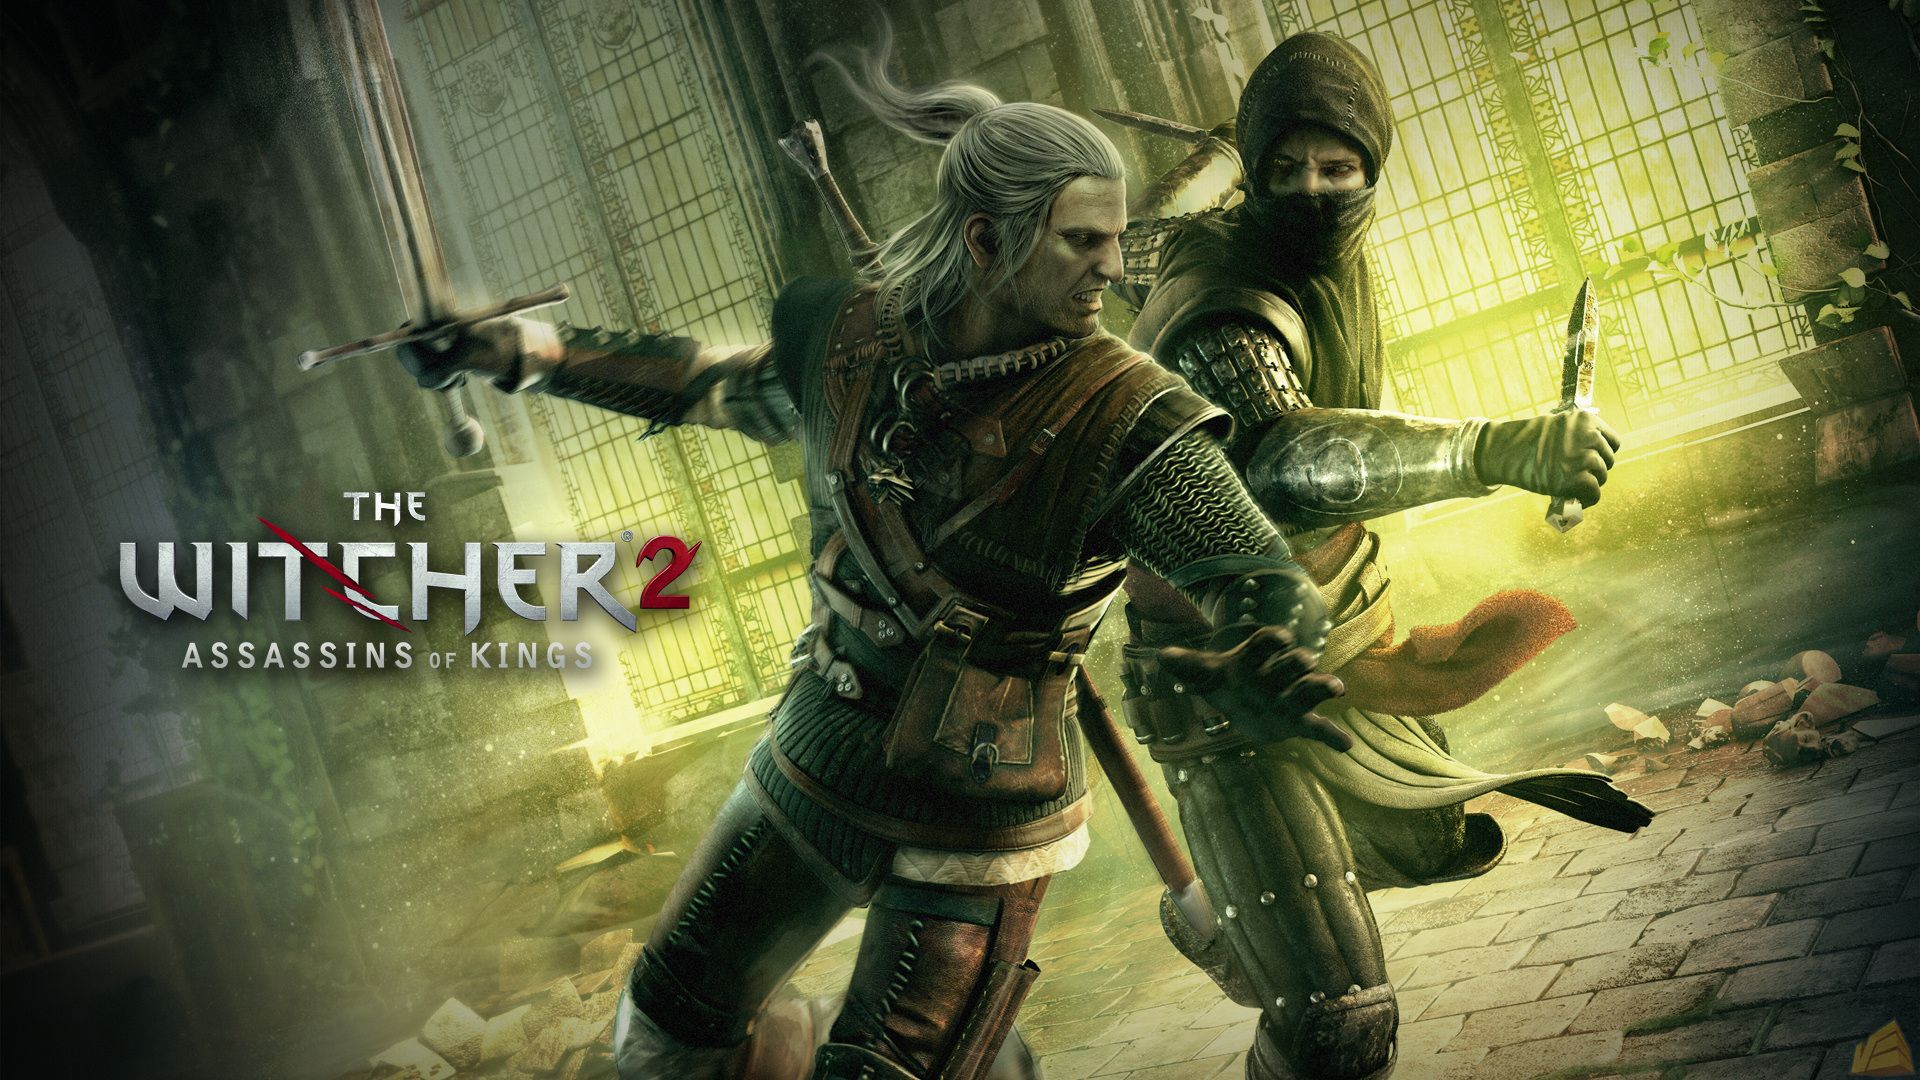 The Witcher 2 wallpaper 5